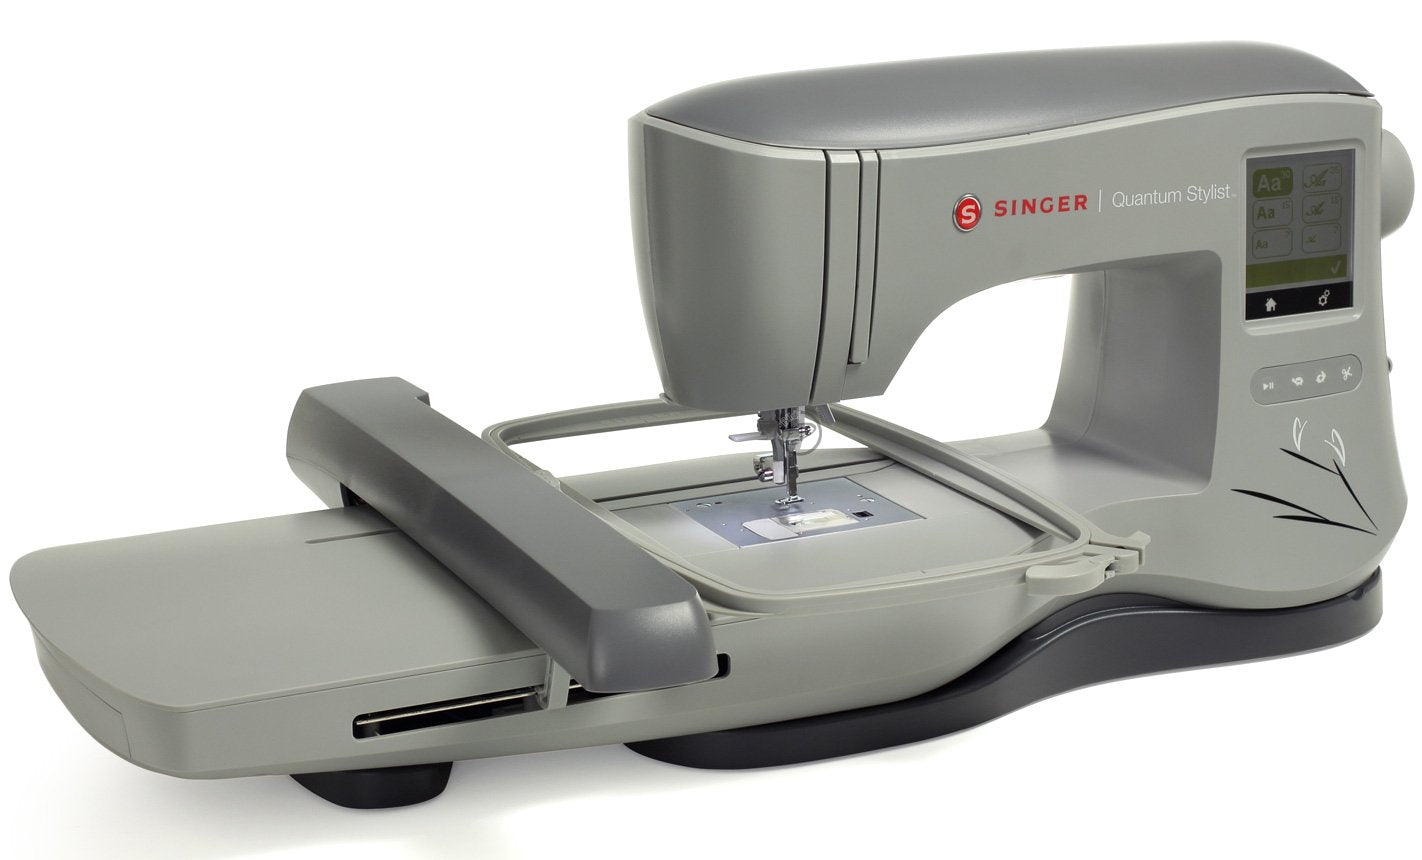 Singer Quantum Stylist EM200 Embroidery Machine